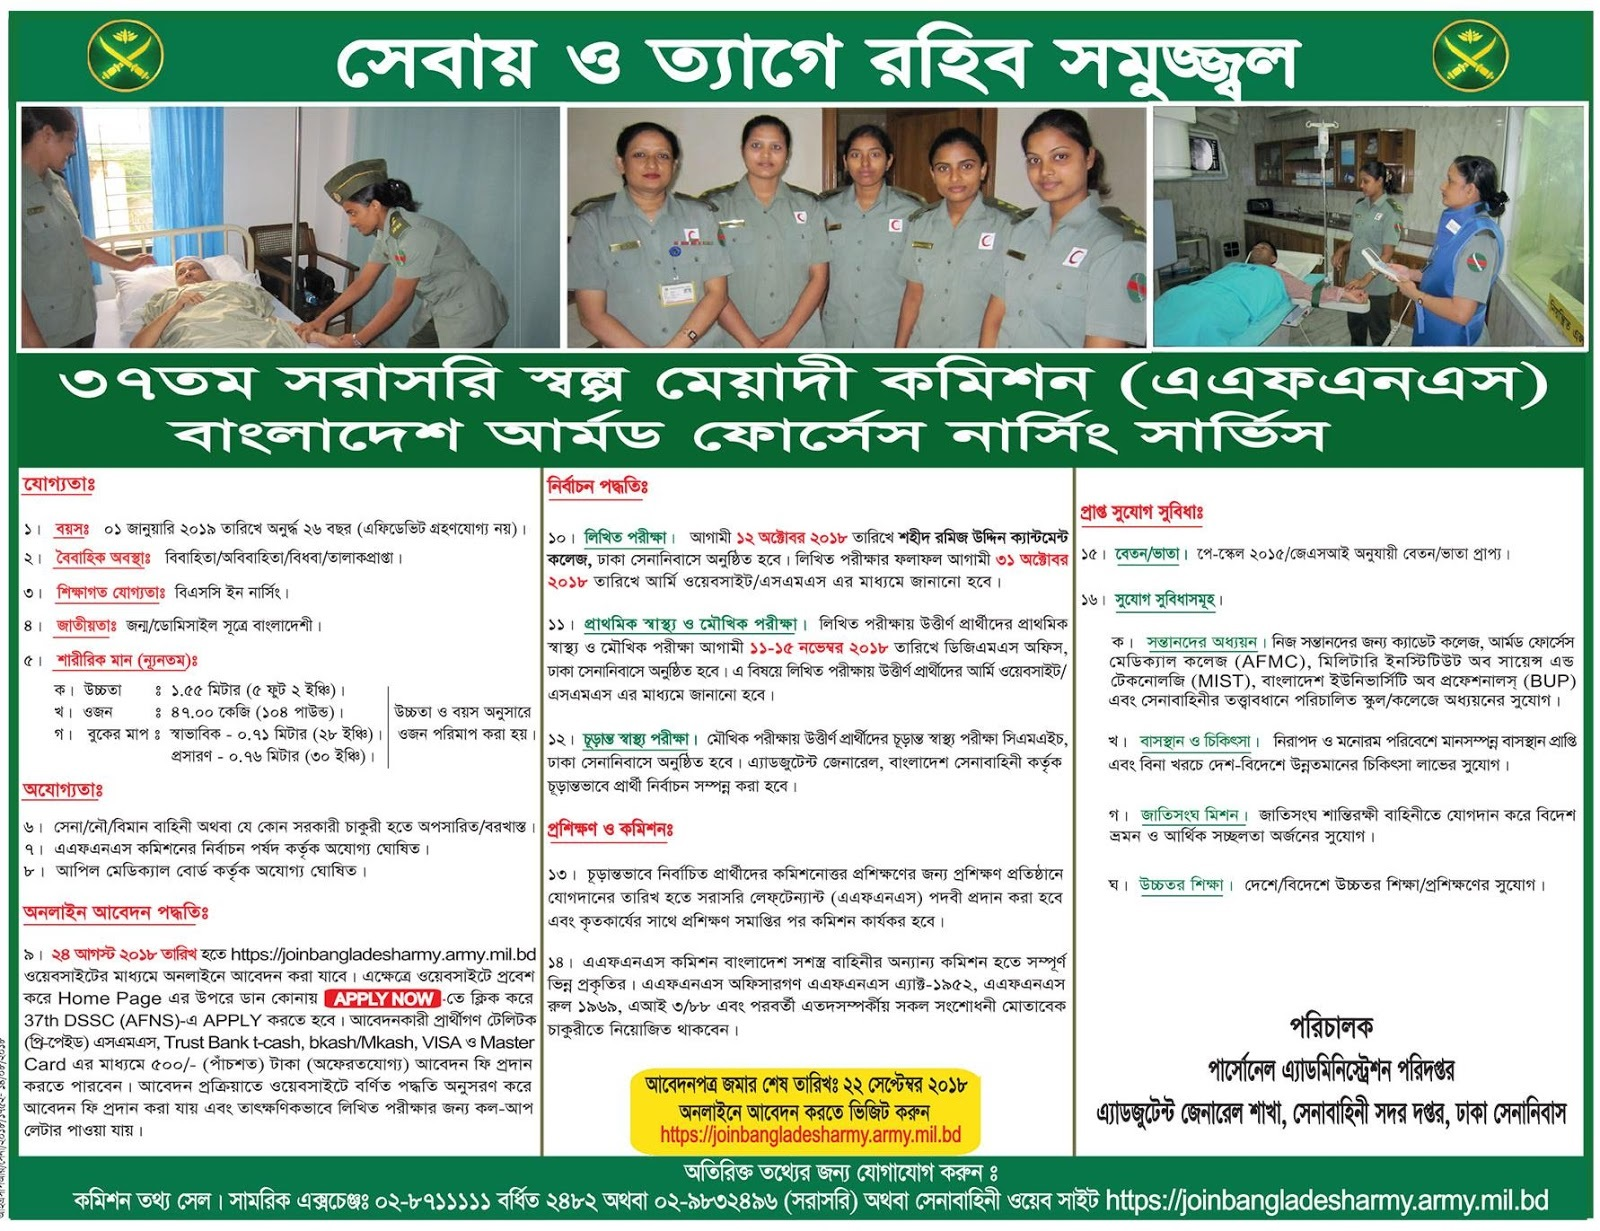 Bangladesh Army Nurse Jobs Circular 25/08/2018